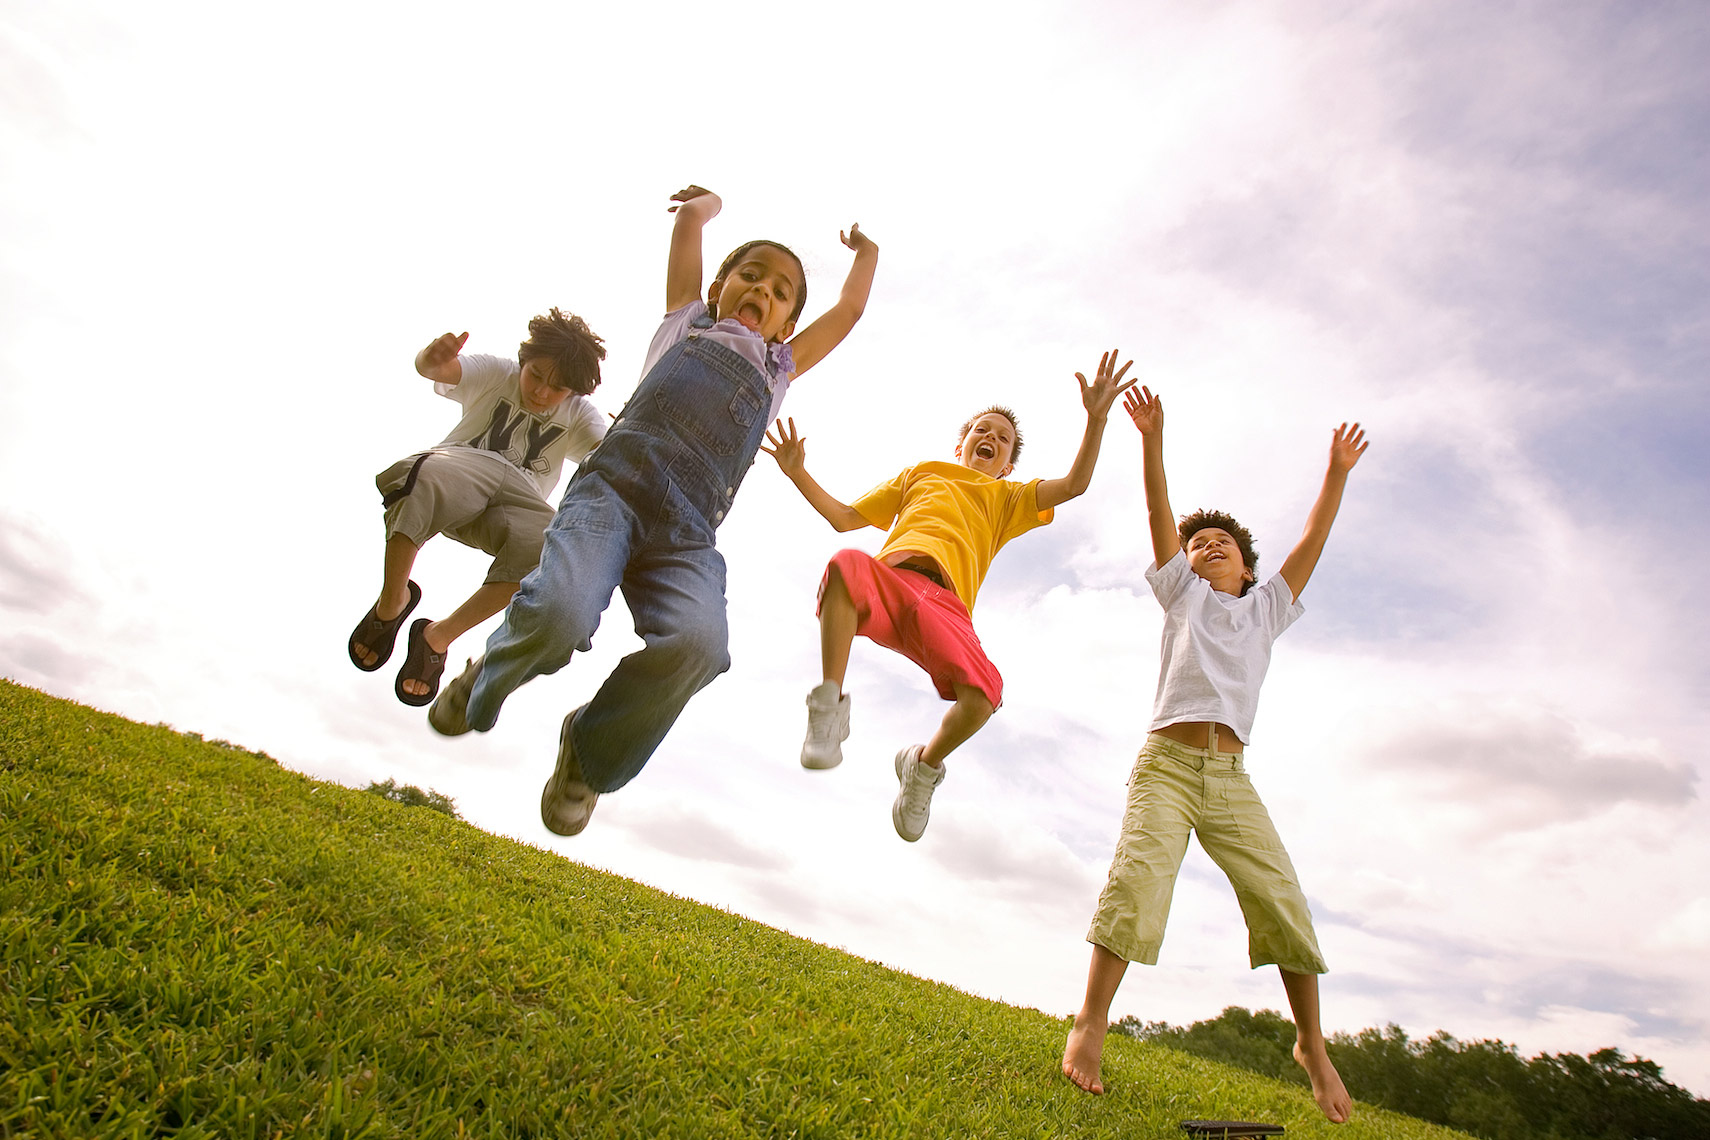 children jumping in air at park_Robert_Holland.jpg ...